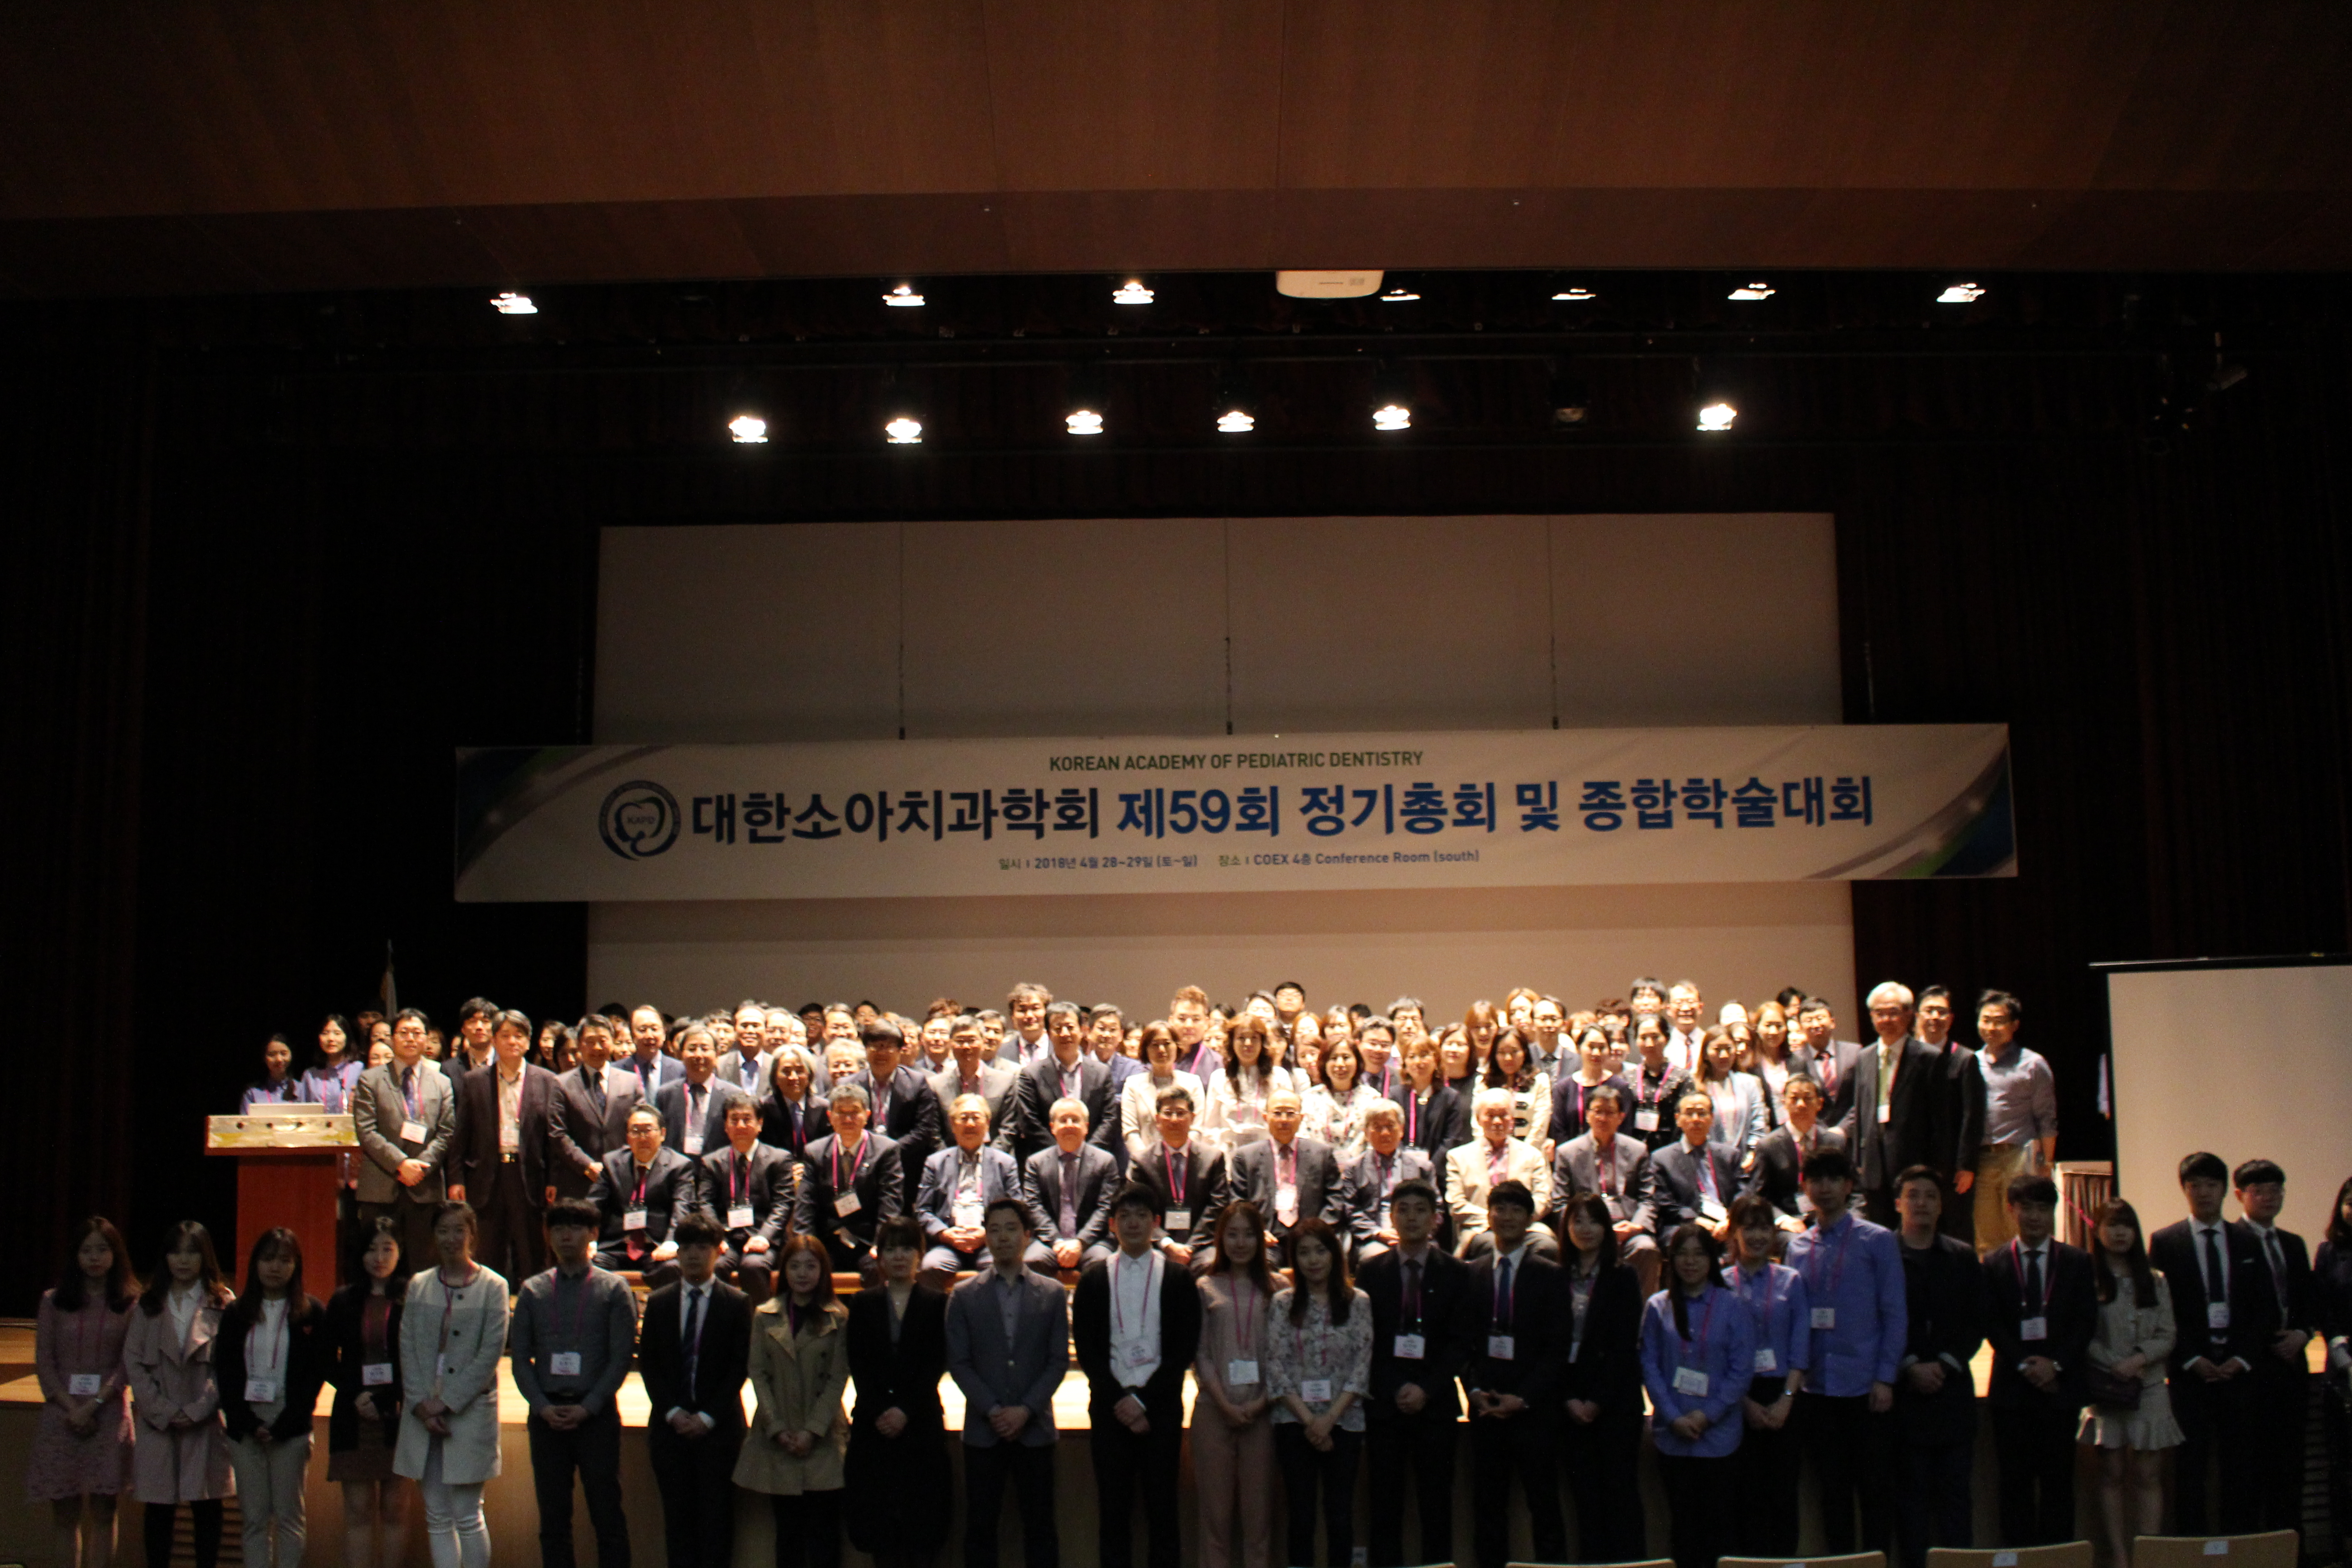 The 59th Scientific Meeting and Annual Congress of KAPD